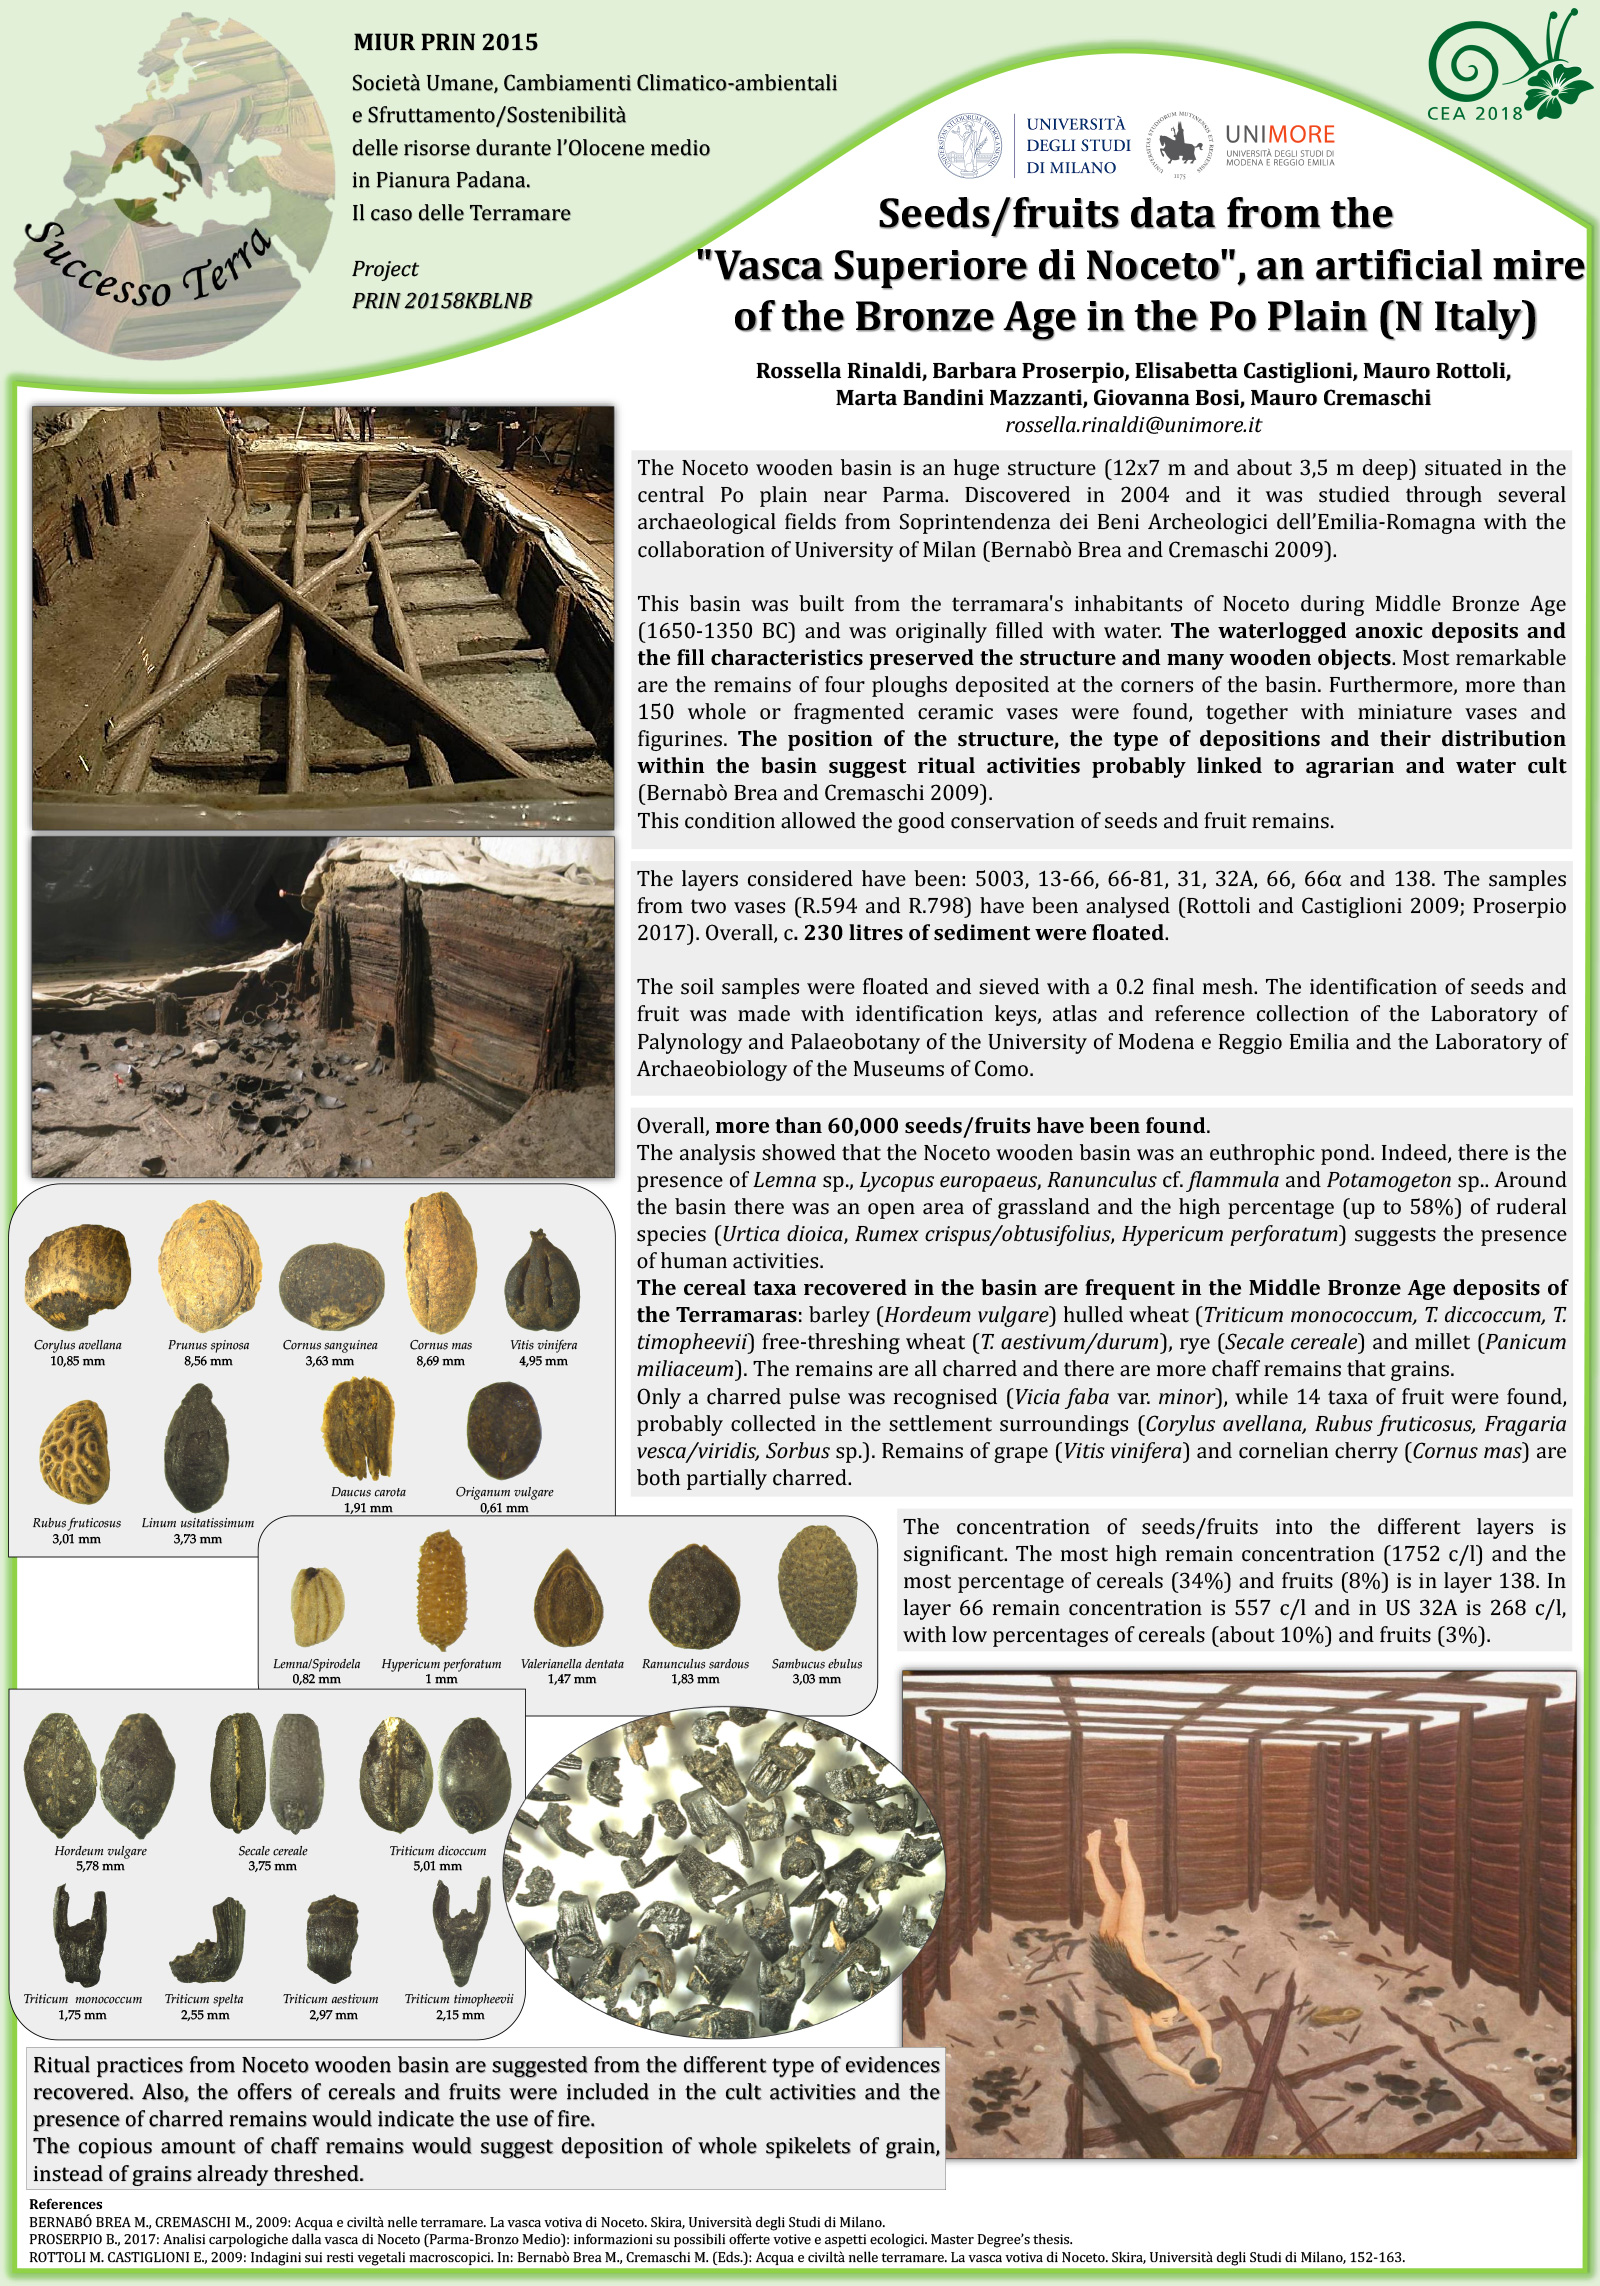 Seeds/fruits data from the 'Vasca Superiore di Noceto' an artificial mire of the Bronze Age in the Po Plain (N Italy)